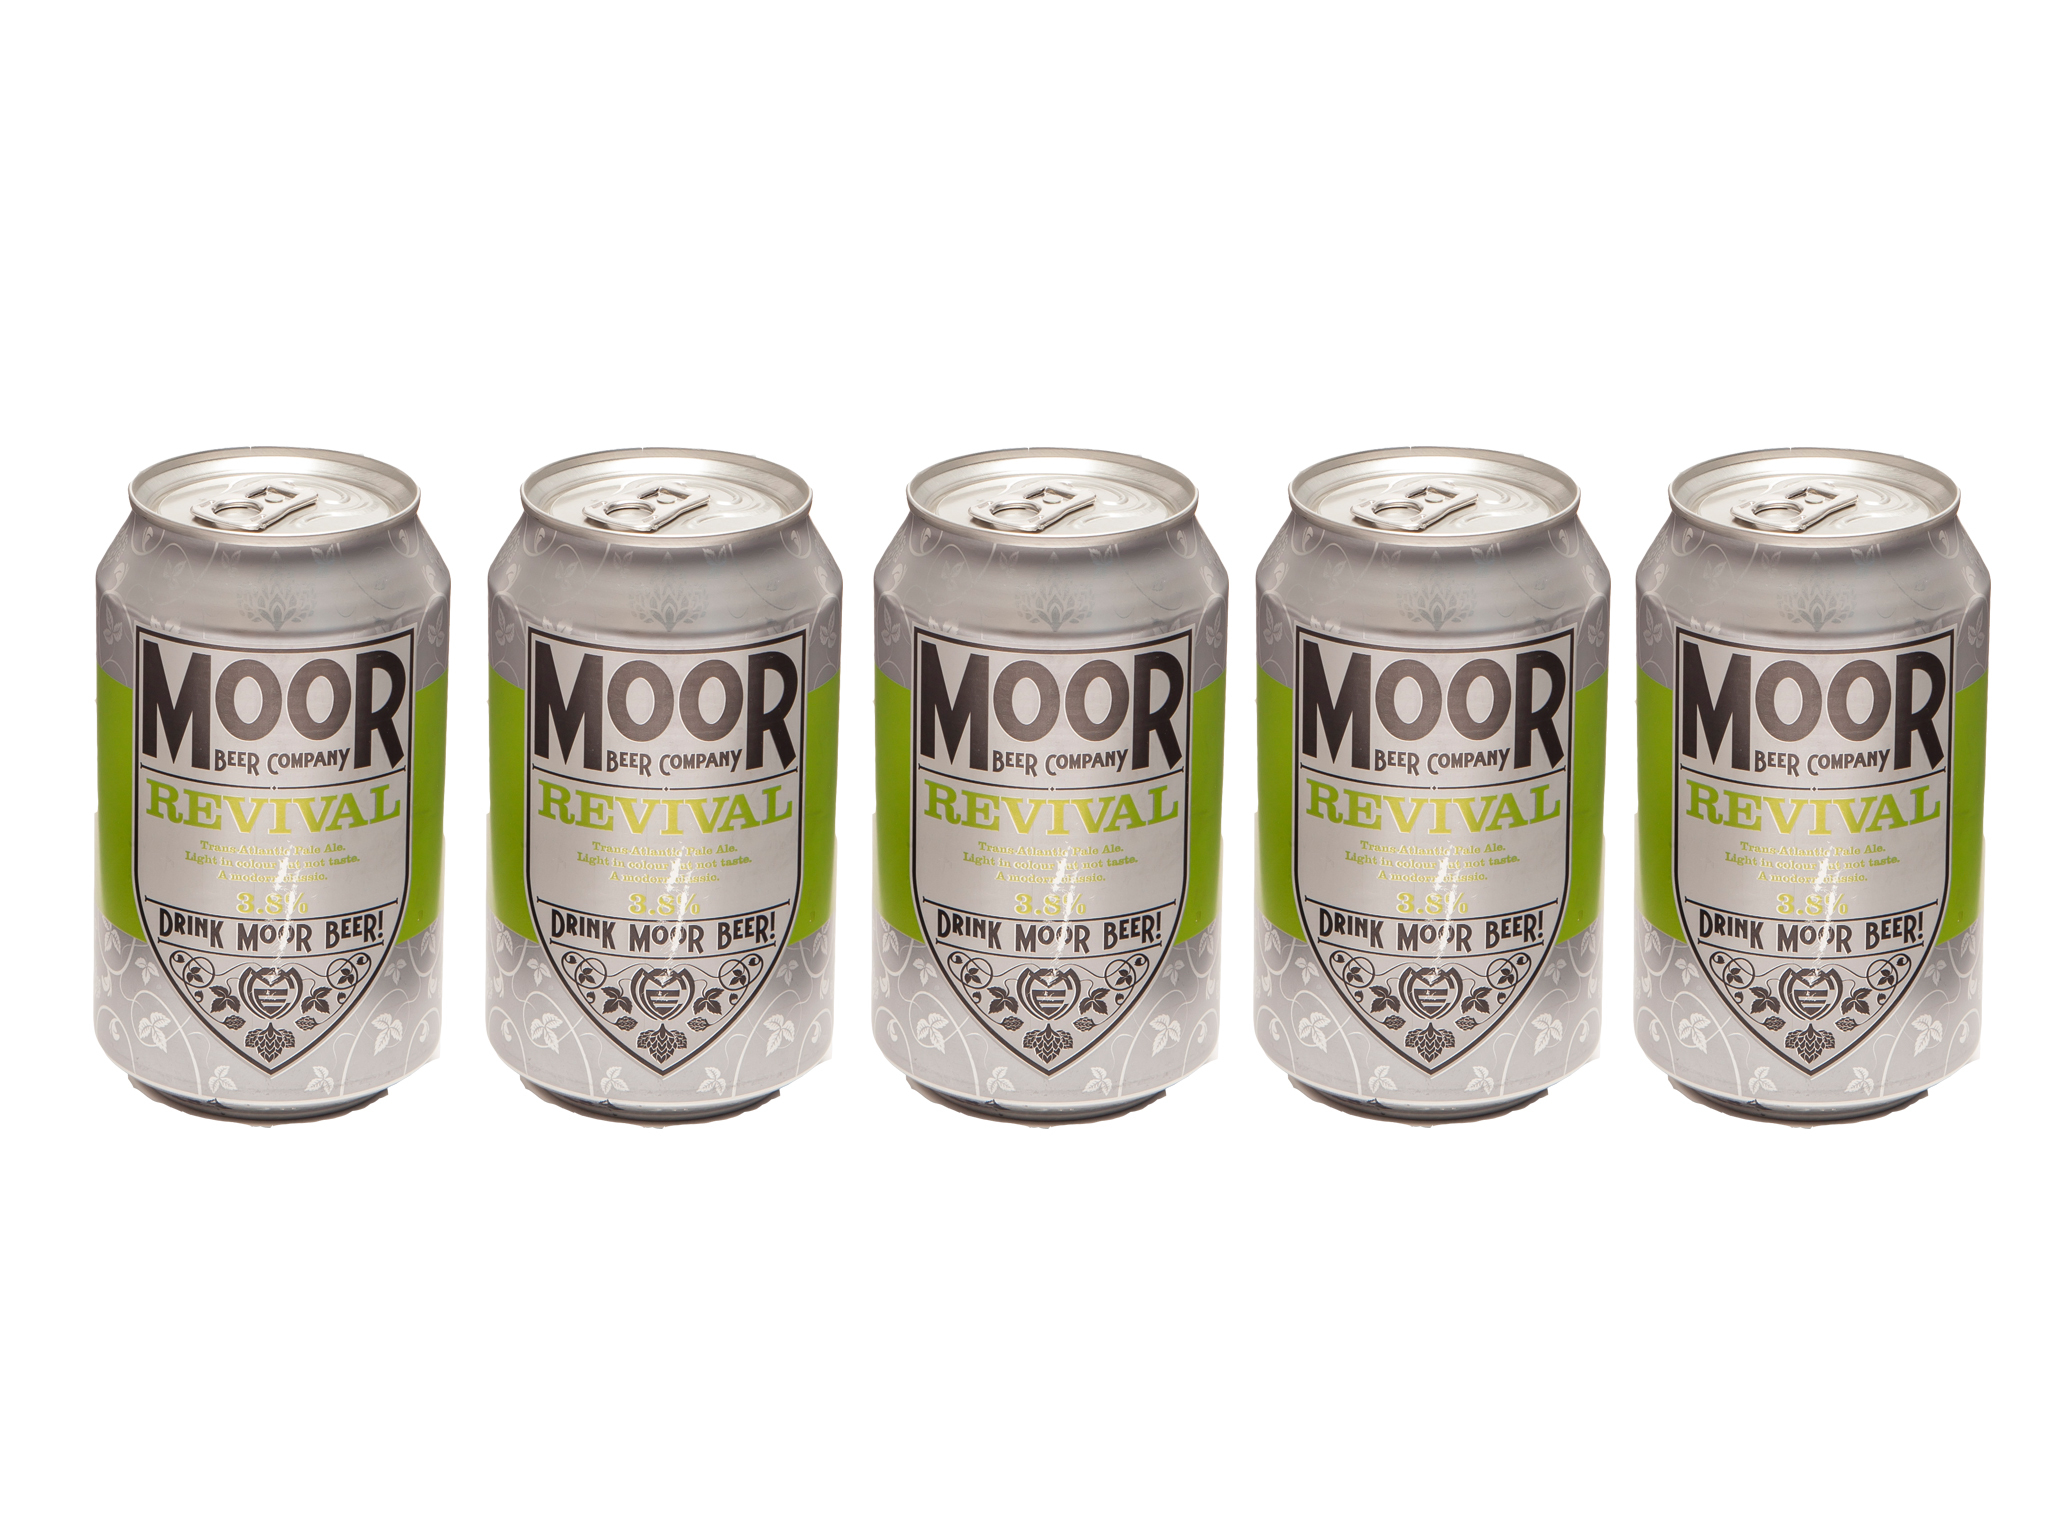 Moor Beer Company - Revival